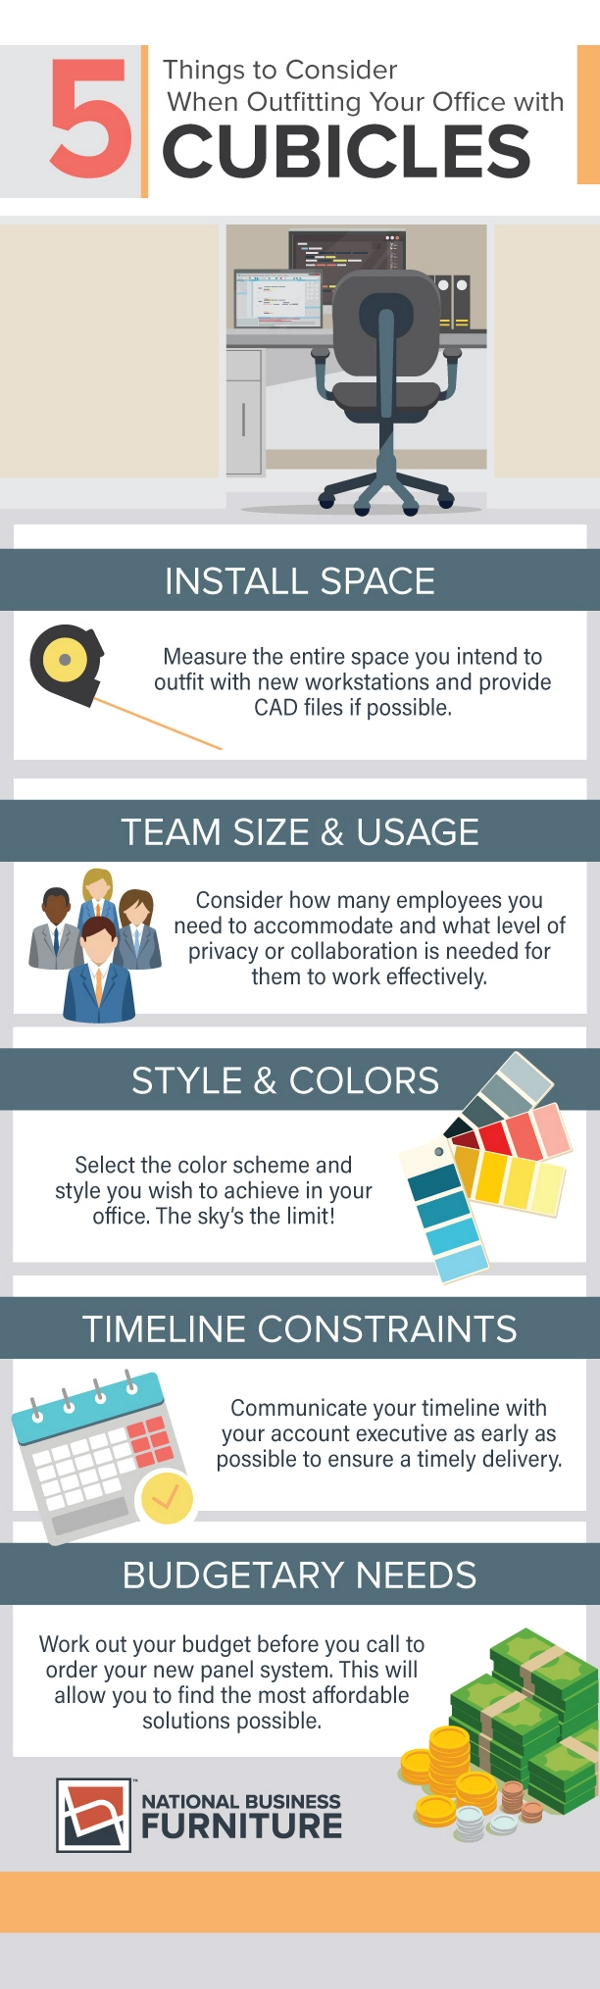 office cubicle infographic